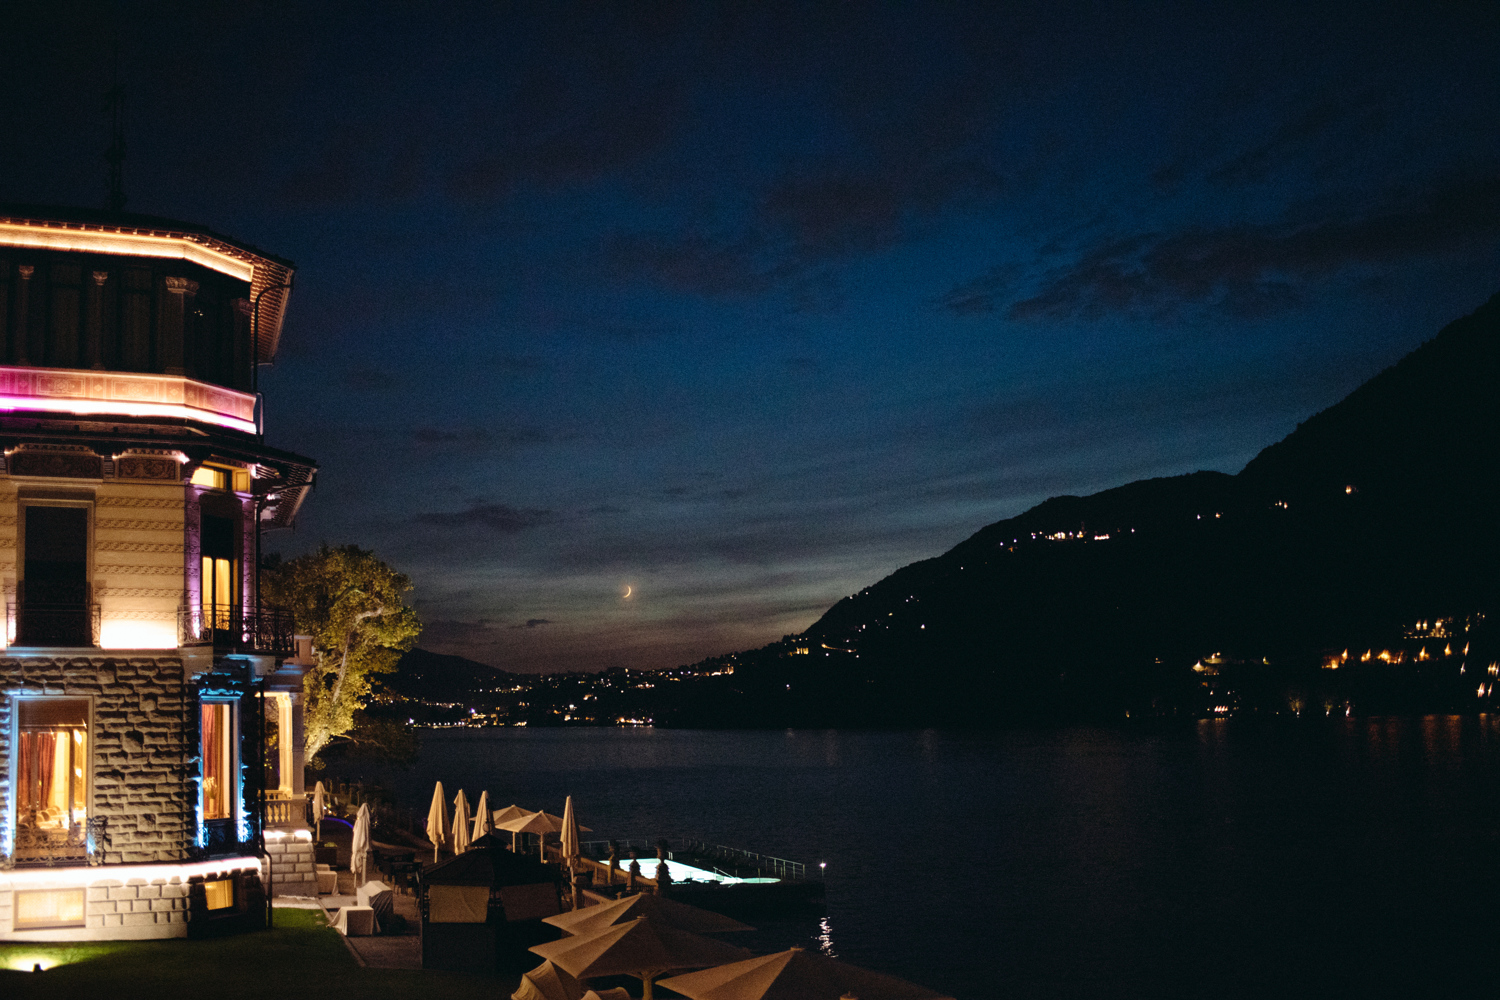 night castadiva resort lago di como